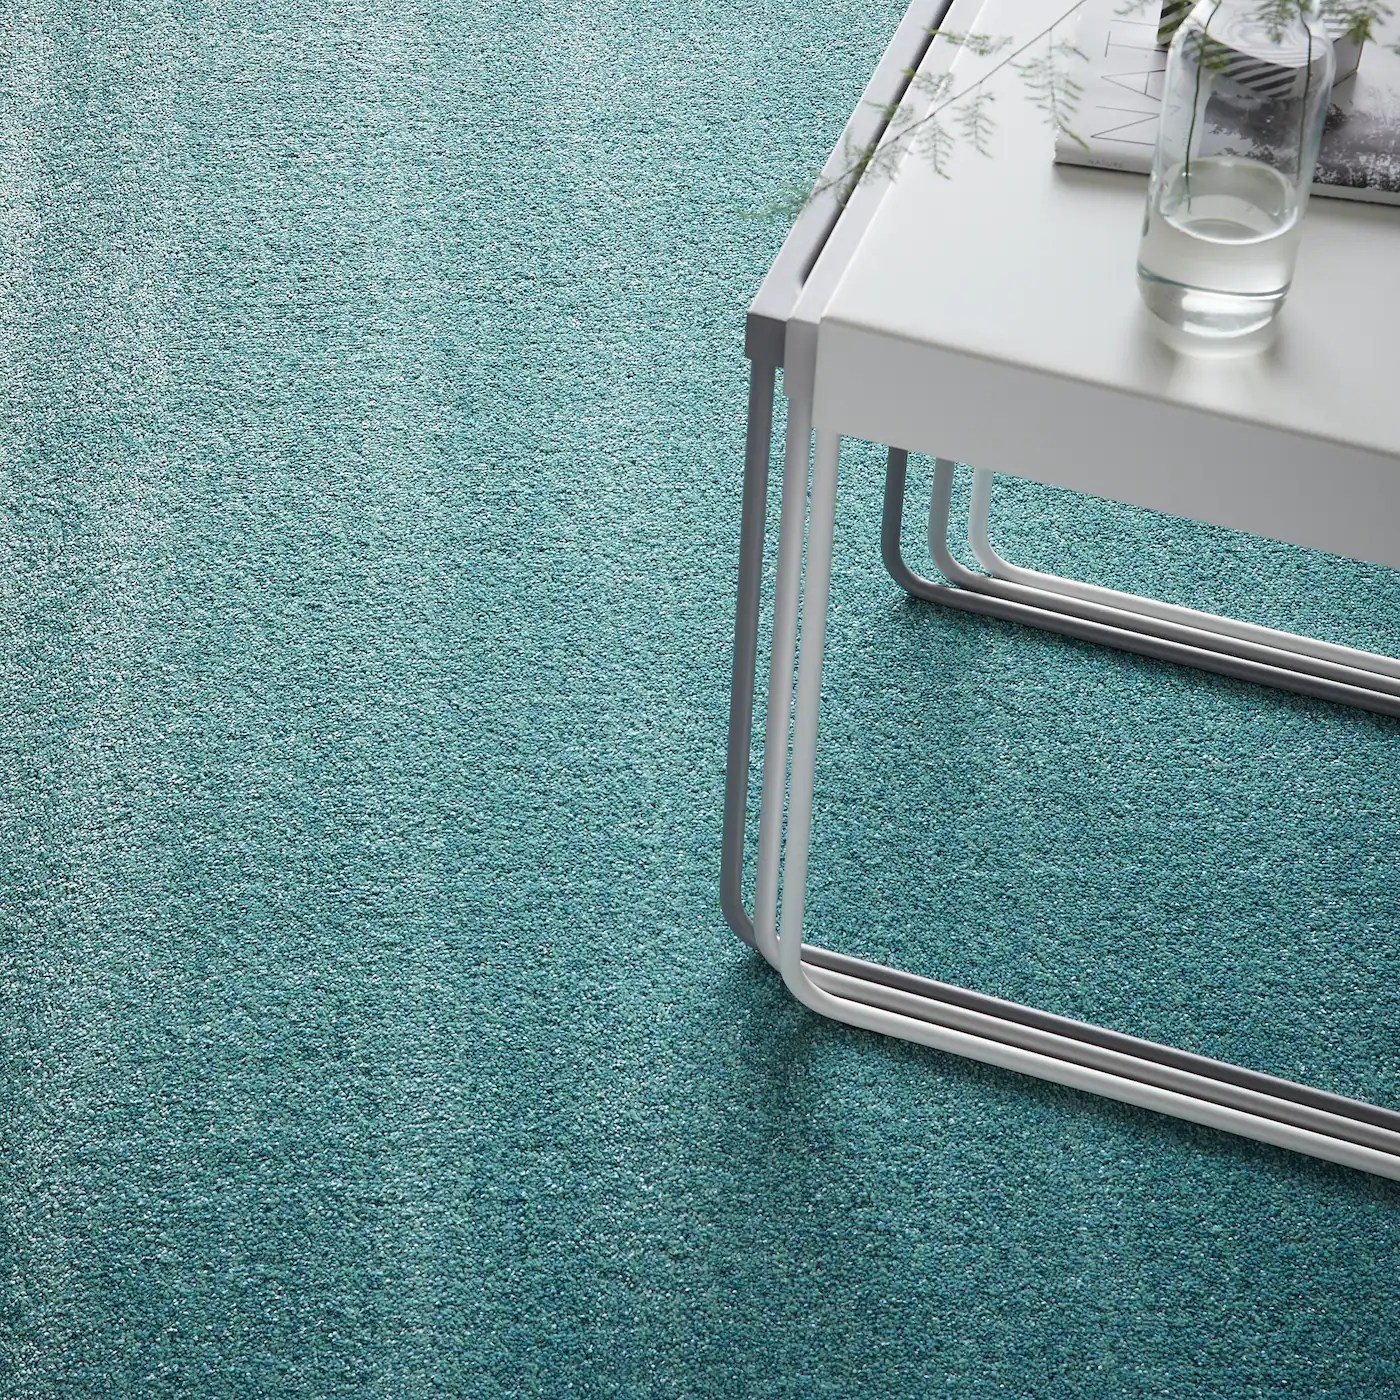 langsted tapis poils ras turquoise 170x240 cm